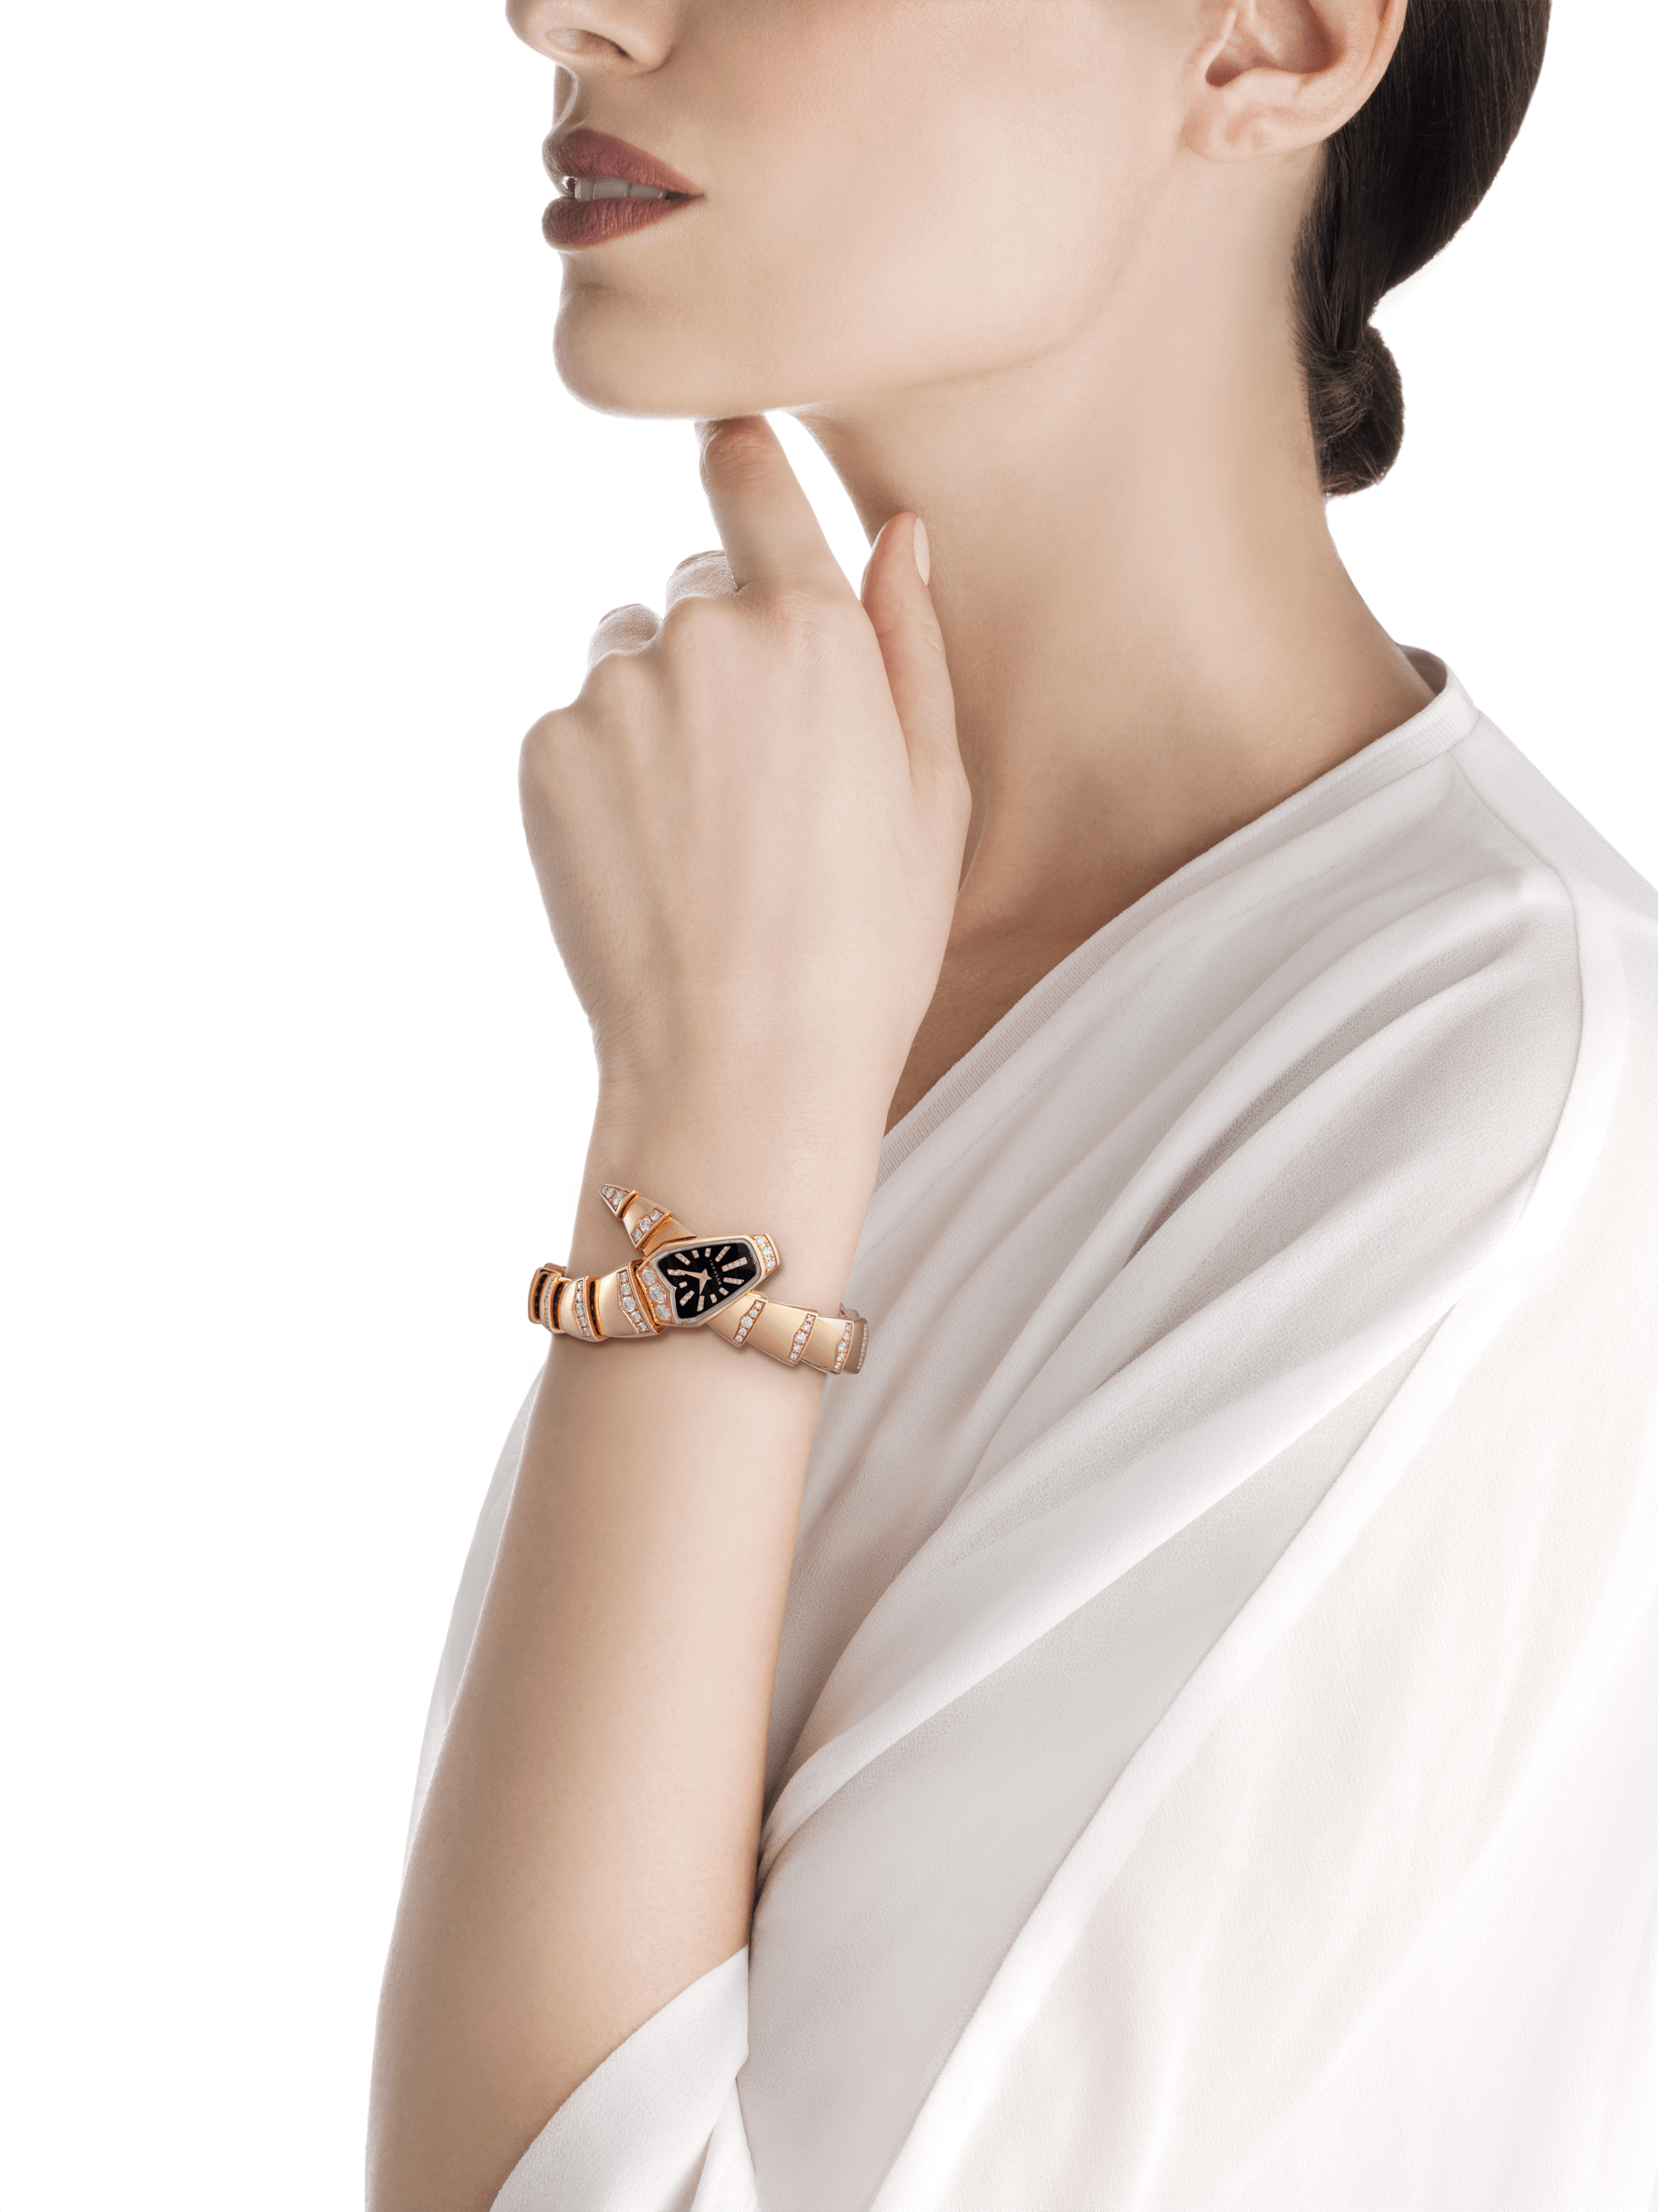 Serpenti Jewellery Watch in 18 kt rose gold case and single spiral bracelet, both set with brilliant cut diamonds, black sapphire crystal dial and brilliant cut diamond indexes. 102344 image 2